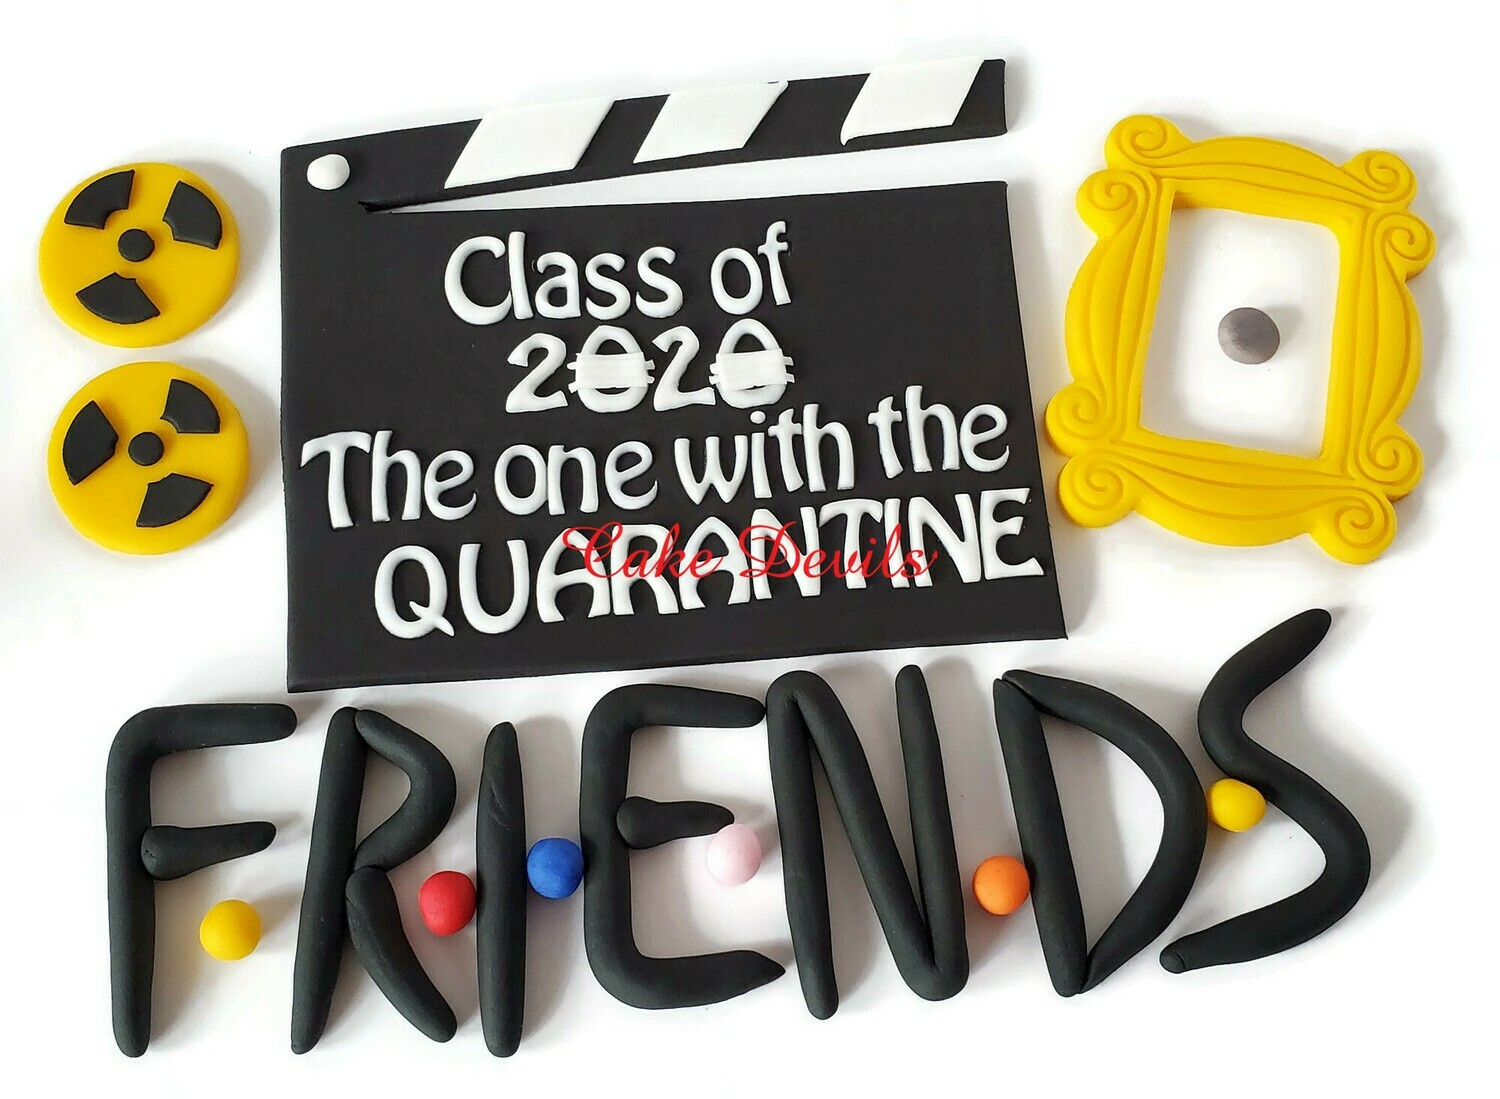 Friends Quarantine Graduation fondant Cake Toppers, Class of 2020 Clapboard, Frame, bio hazard, and Letters cake decorations